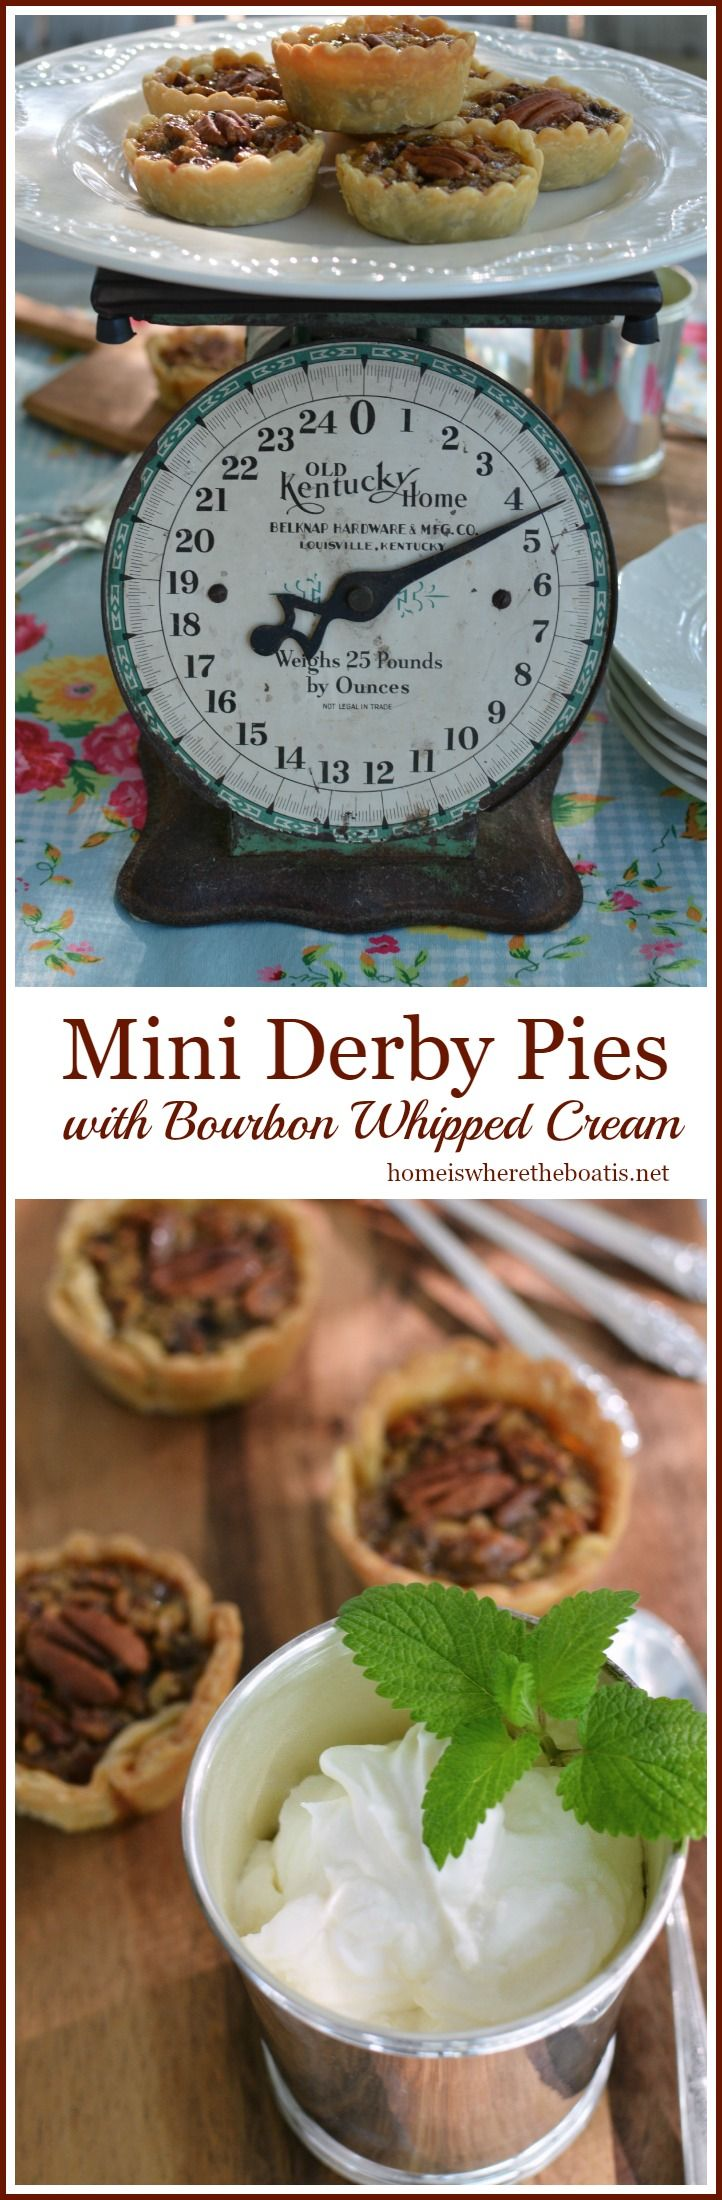 Mini Derby Pies with Bourbon Whipped Cream | homeiswheretheboatis.net #KentuckyDerby #recipe